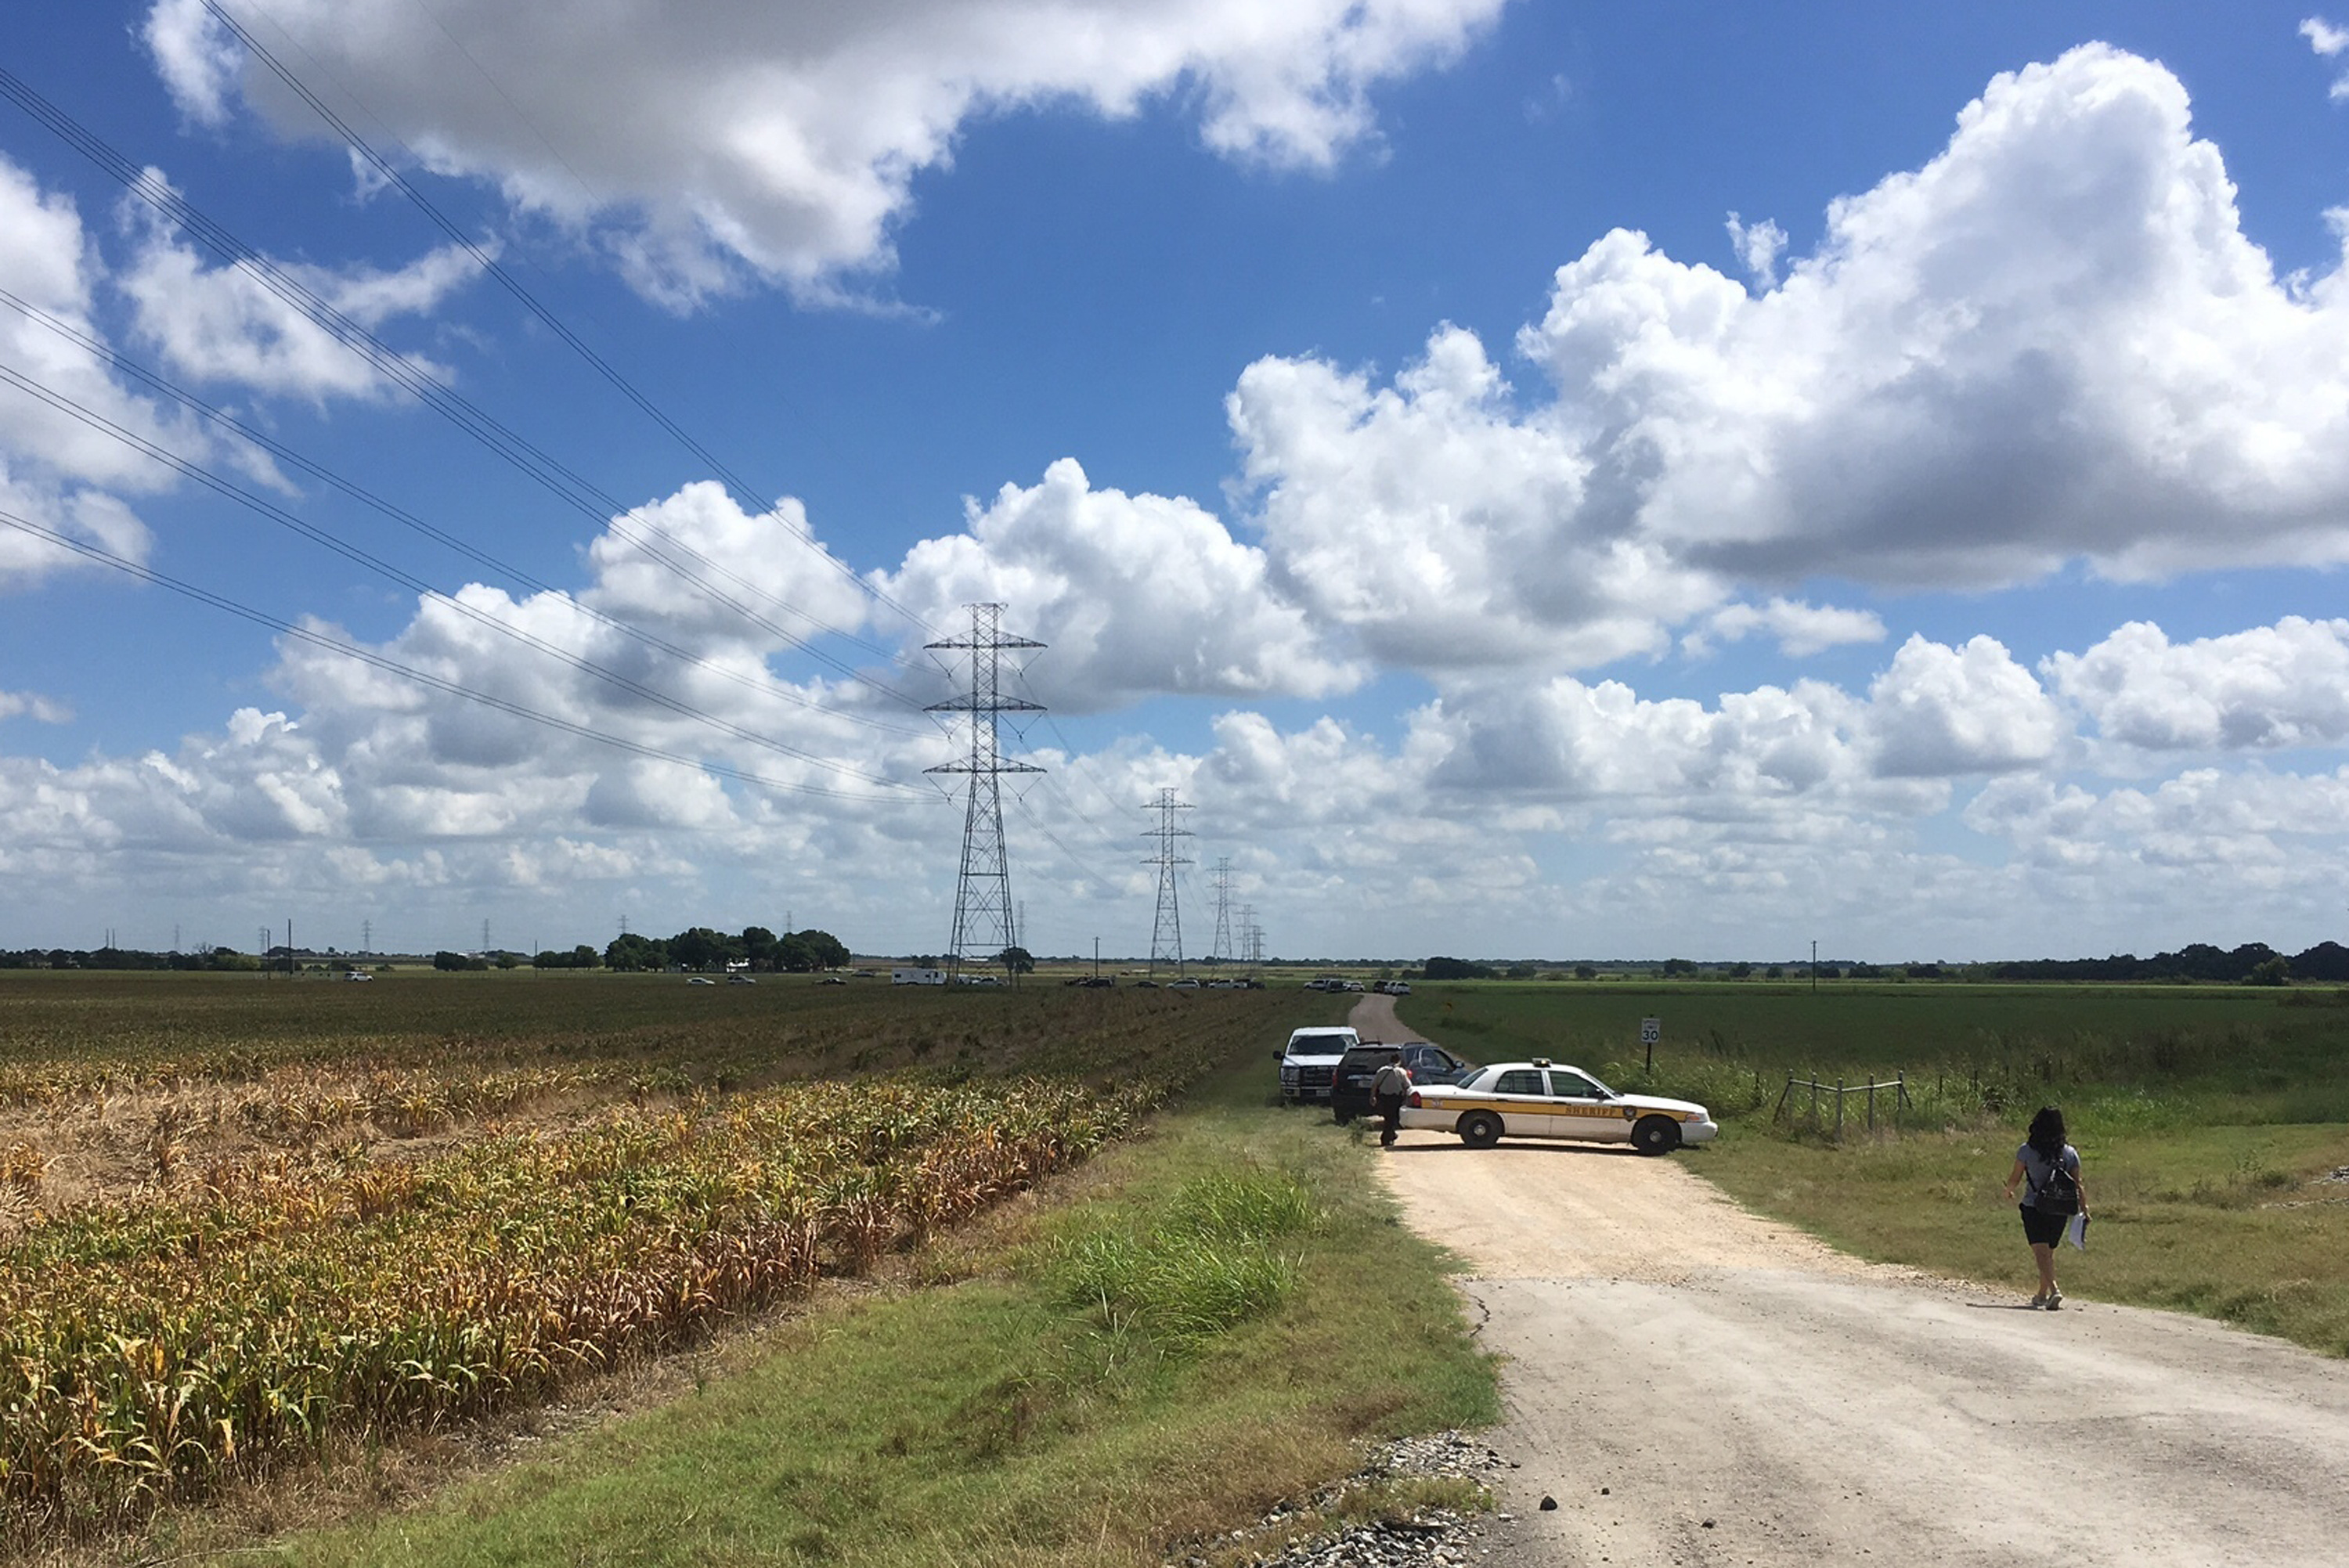 Police cars block access to the site where a hot air balloon crashed early Saturday in Central Texas. James Vertuno/AP